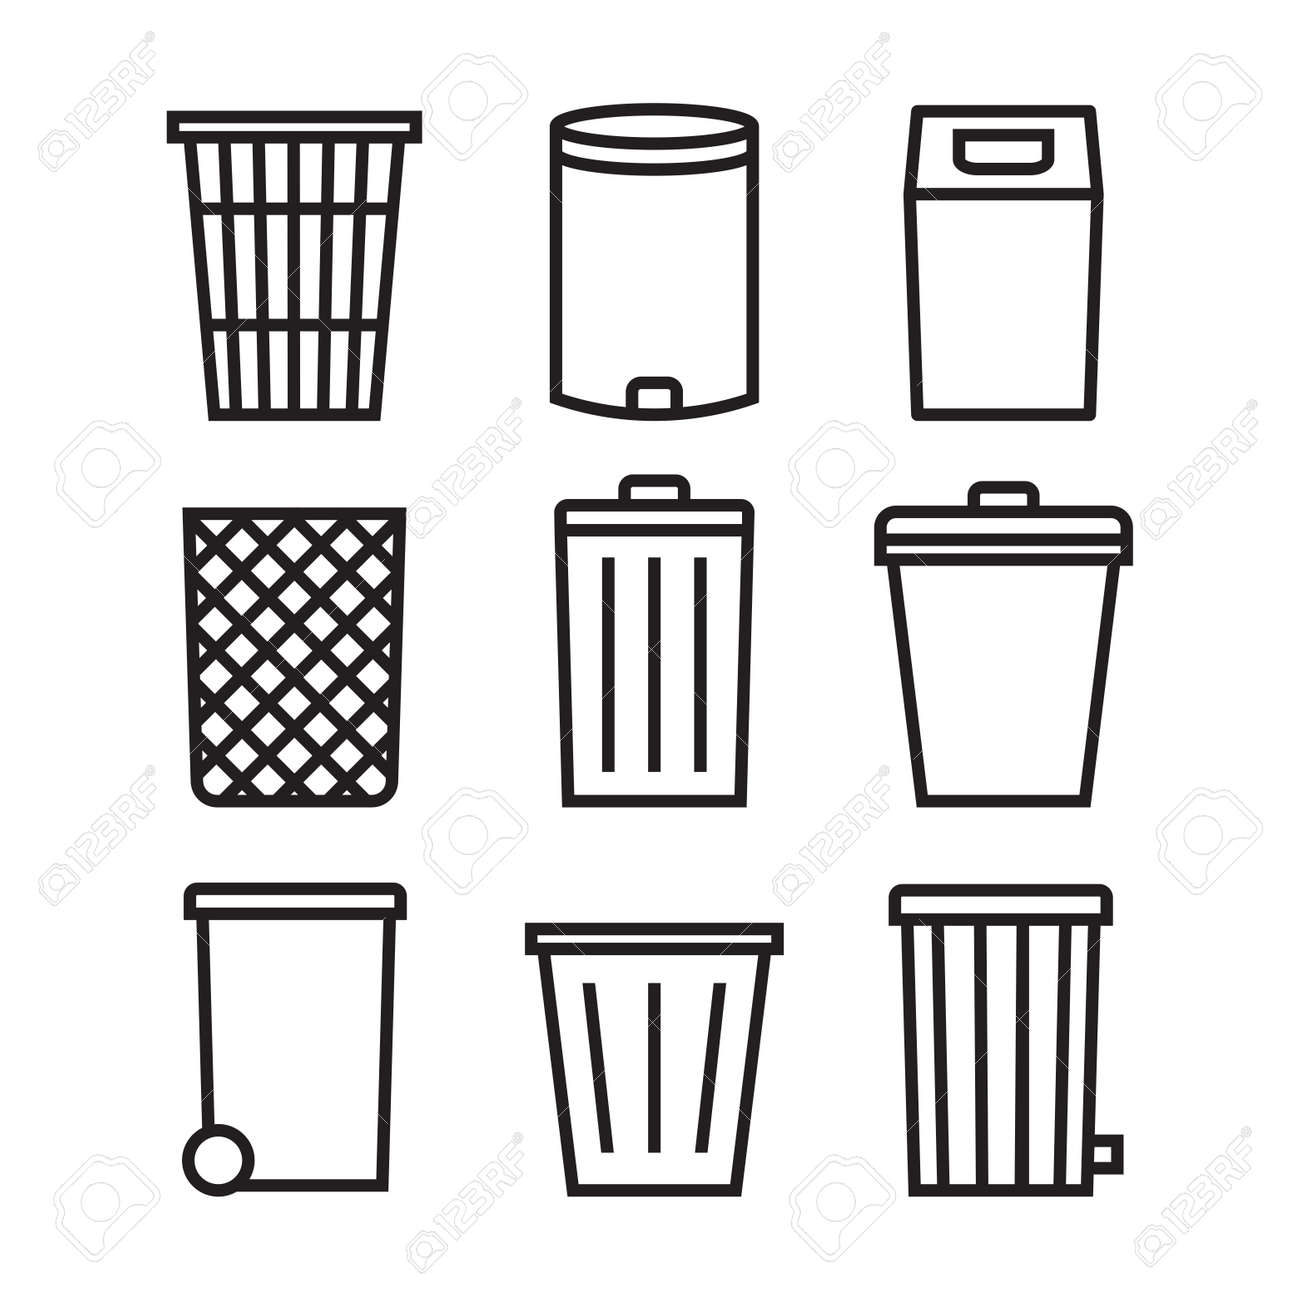 Trash can icon set. Trash can line icons collection for web apps and mobile concept. - 162821035